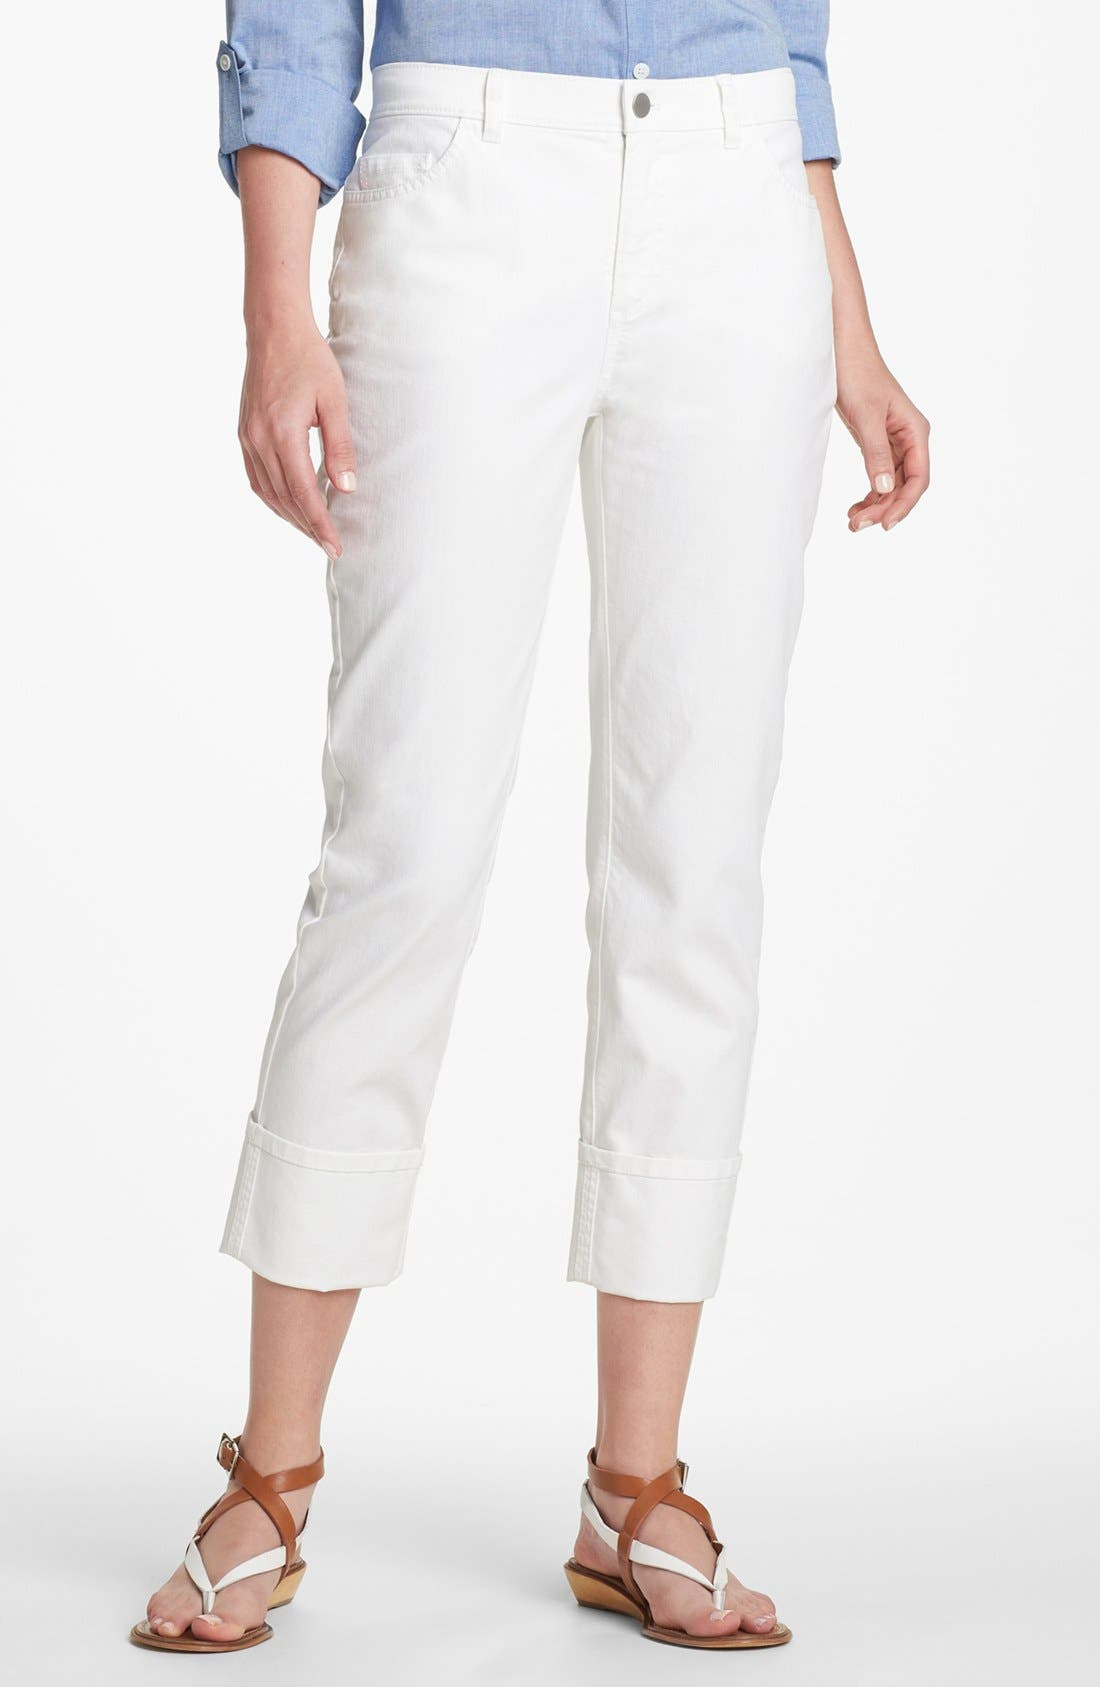 Alternate Image 1 Selected - Lafayette 148 New York Curvy Fit Crop Jeans